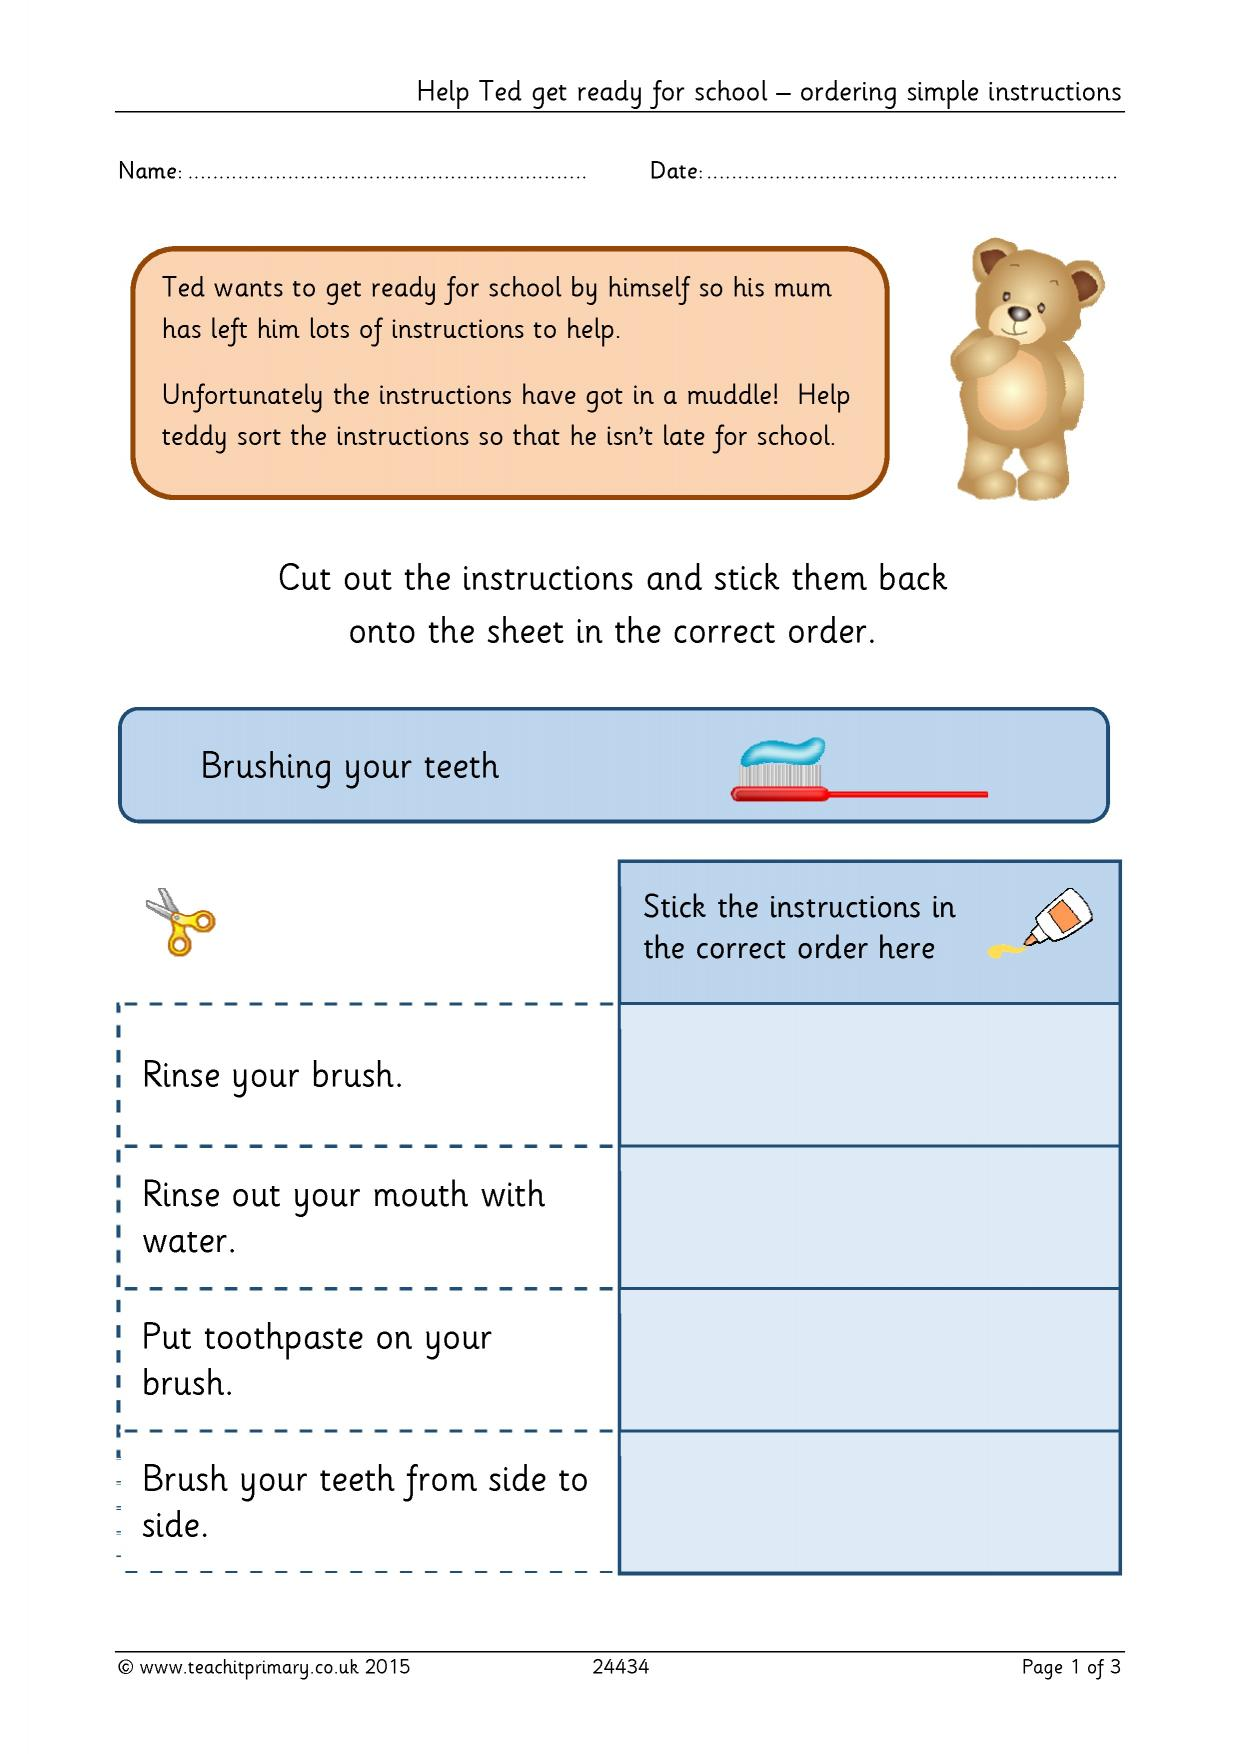 Help Ted Get Ready For School Ordering Simple Instructions